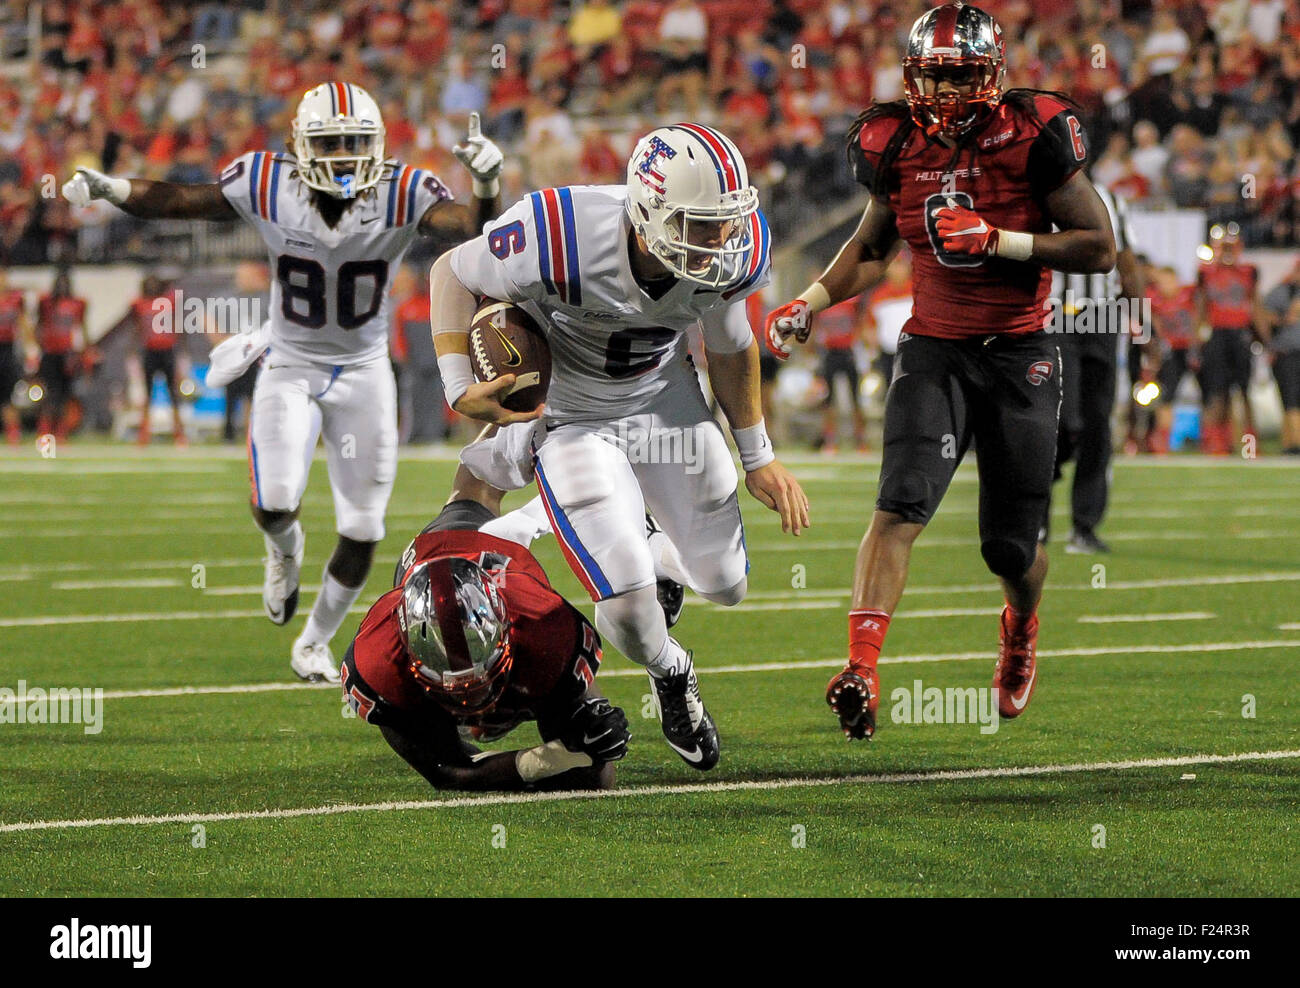 b1cb4f2a83 ... stumbles short of the goal line during NCAA college football action  between the Louisiana Tech Bulldogs and the Western Kentucky Hilltoppers  Toppers at ...